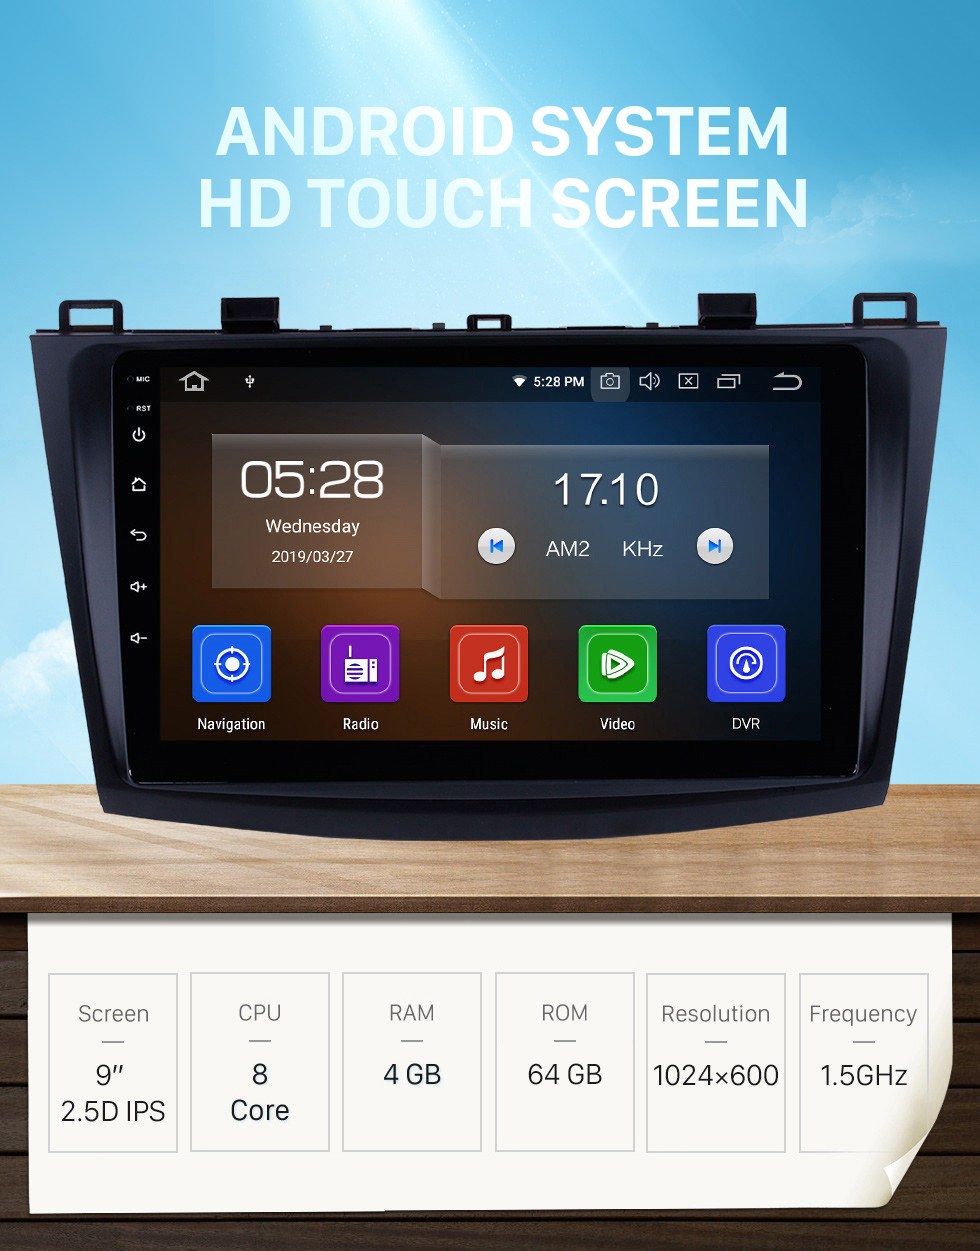 Seicane 9 inch Android 10.0 Autoradio Stereo for 2009 2010 2011 2012 MAZDA 3 GPS radio navigation system with Bluetooth Mirror link  HD touch screen OBD DVR  Rear view camera TV USB  3G WIFI